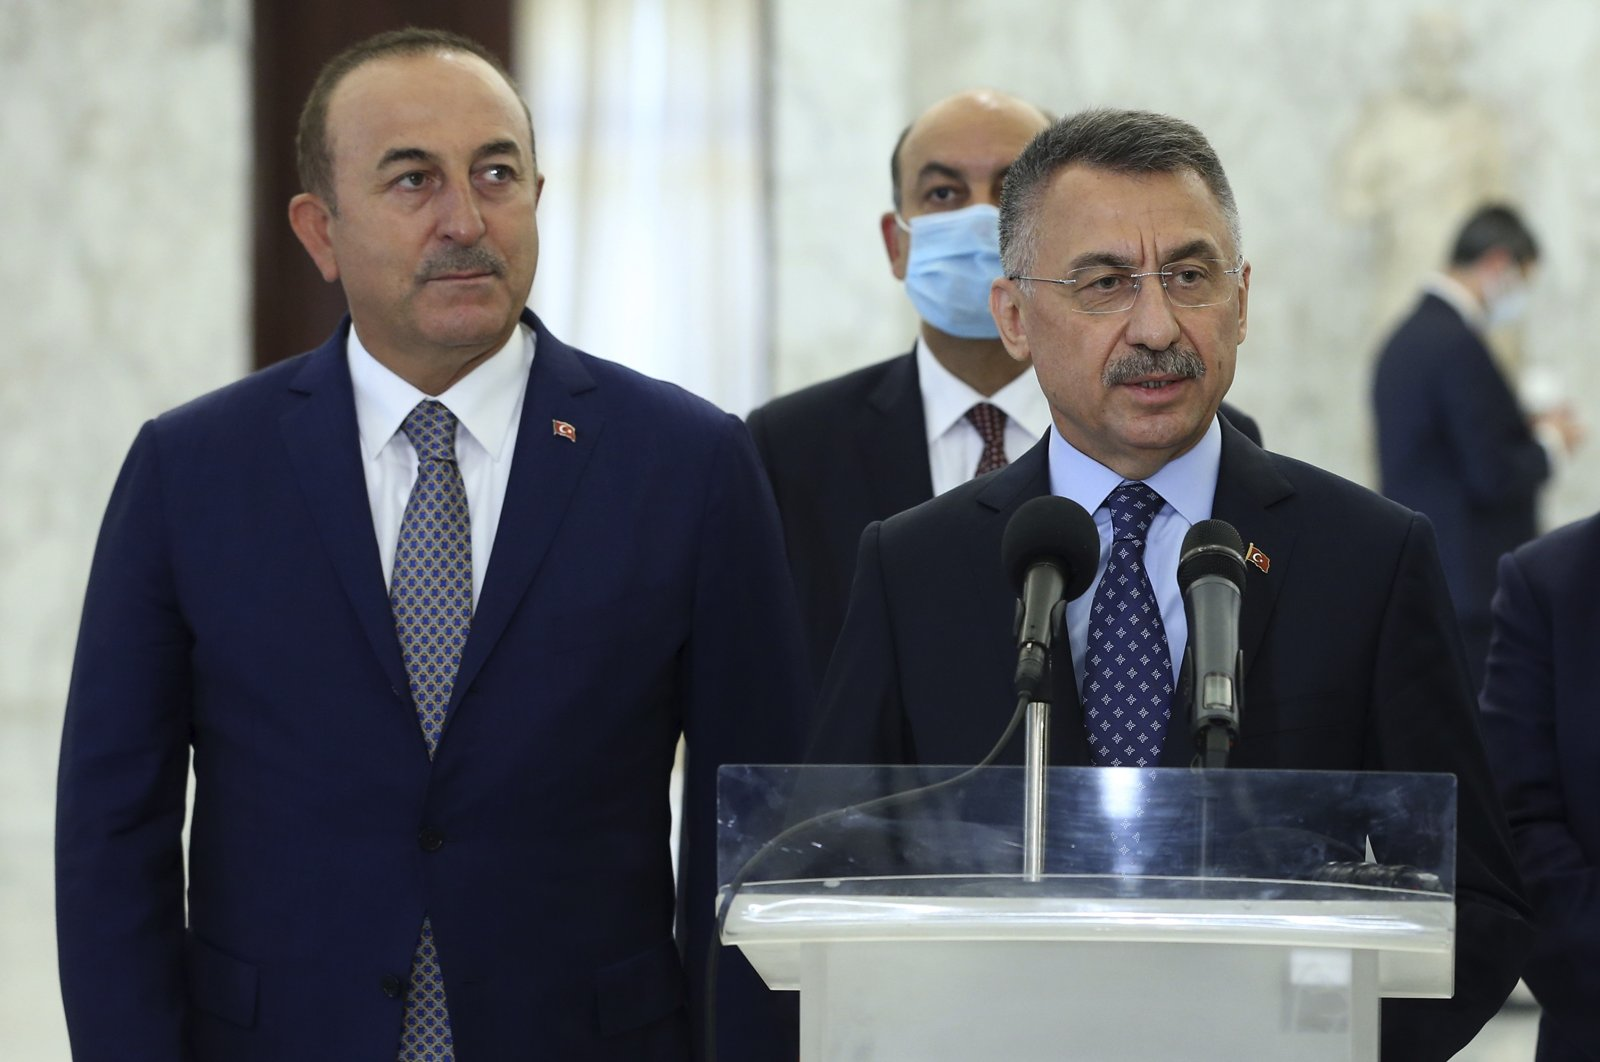 Turkish Foreign Minister Mevlüt Çavuşoğlu (L) and Vice President Fuat Oktay speak to reporters after their meeting with Lebanese President Michel Aoun at the presidential palace, Beirut, Lebanon, Aug. 8, 2020. (AP Photo)